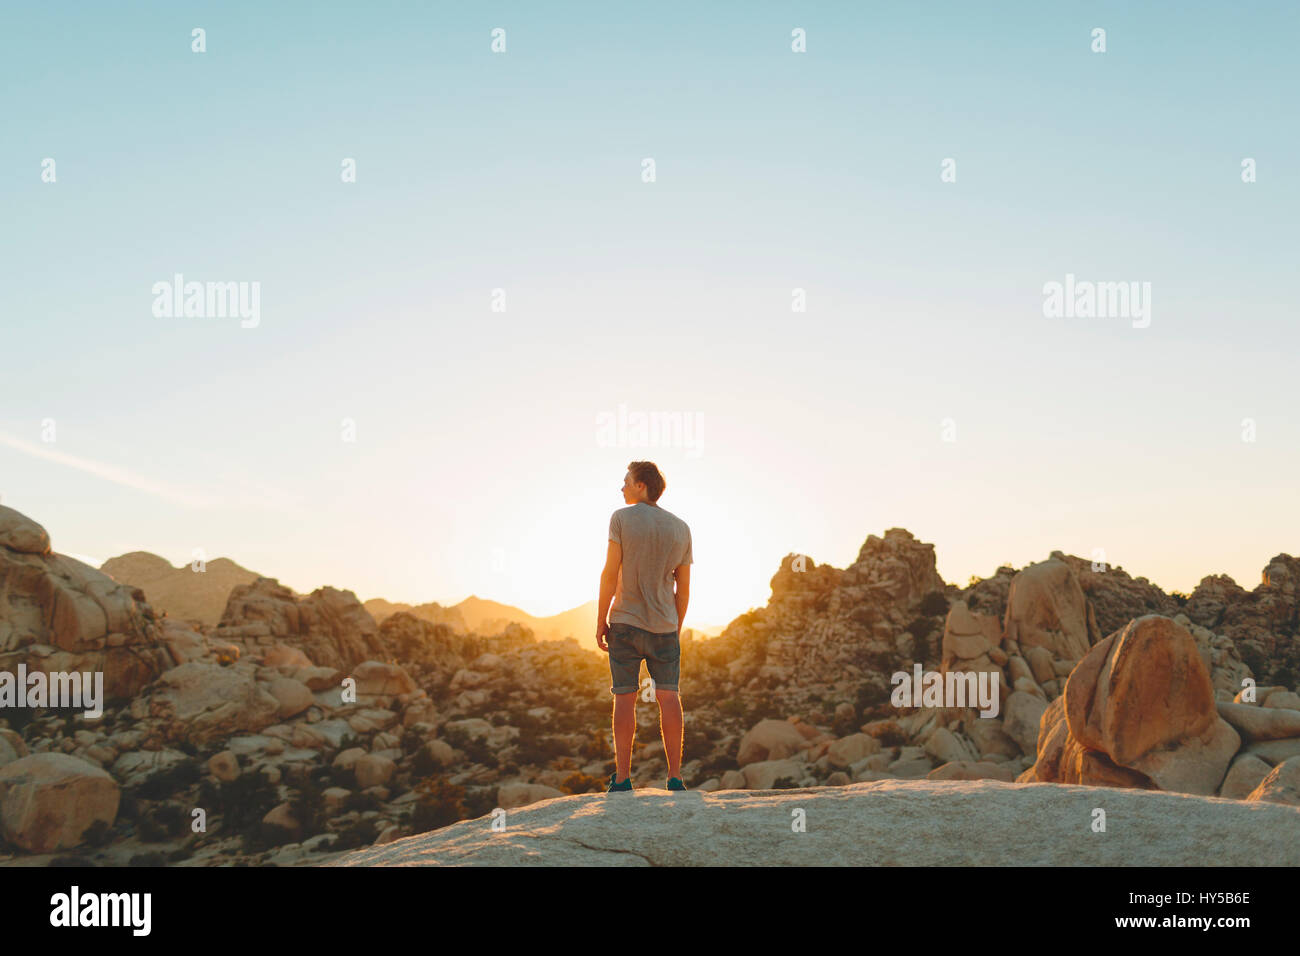 USA, California, Man looking at view in Joshua Tree National Park - Stock Image